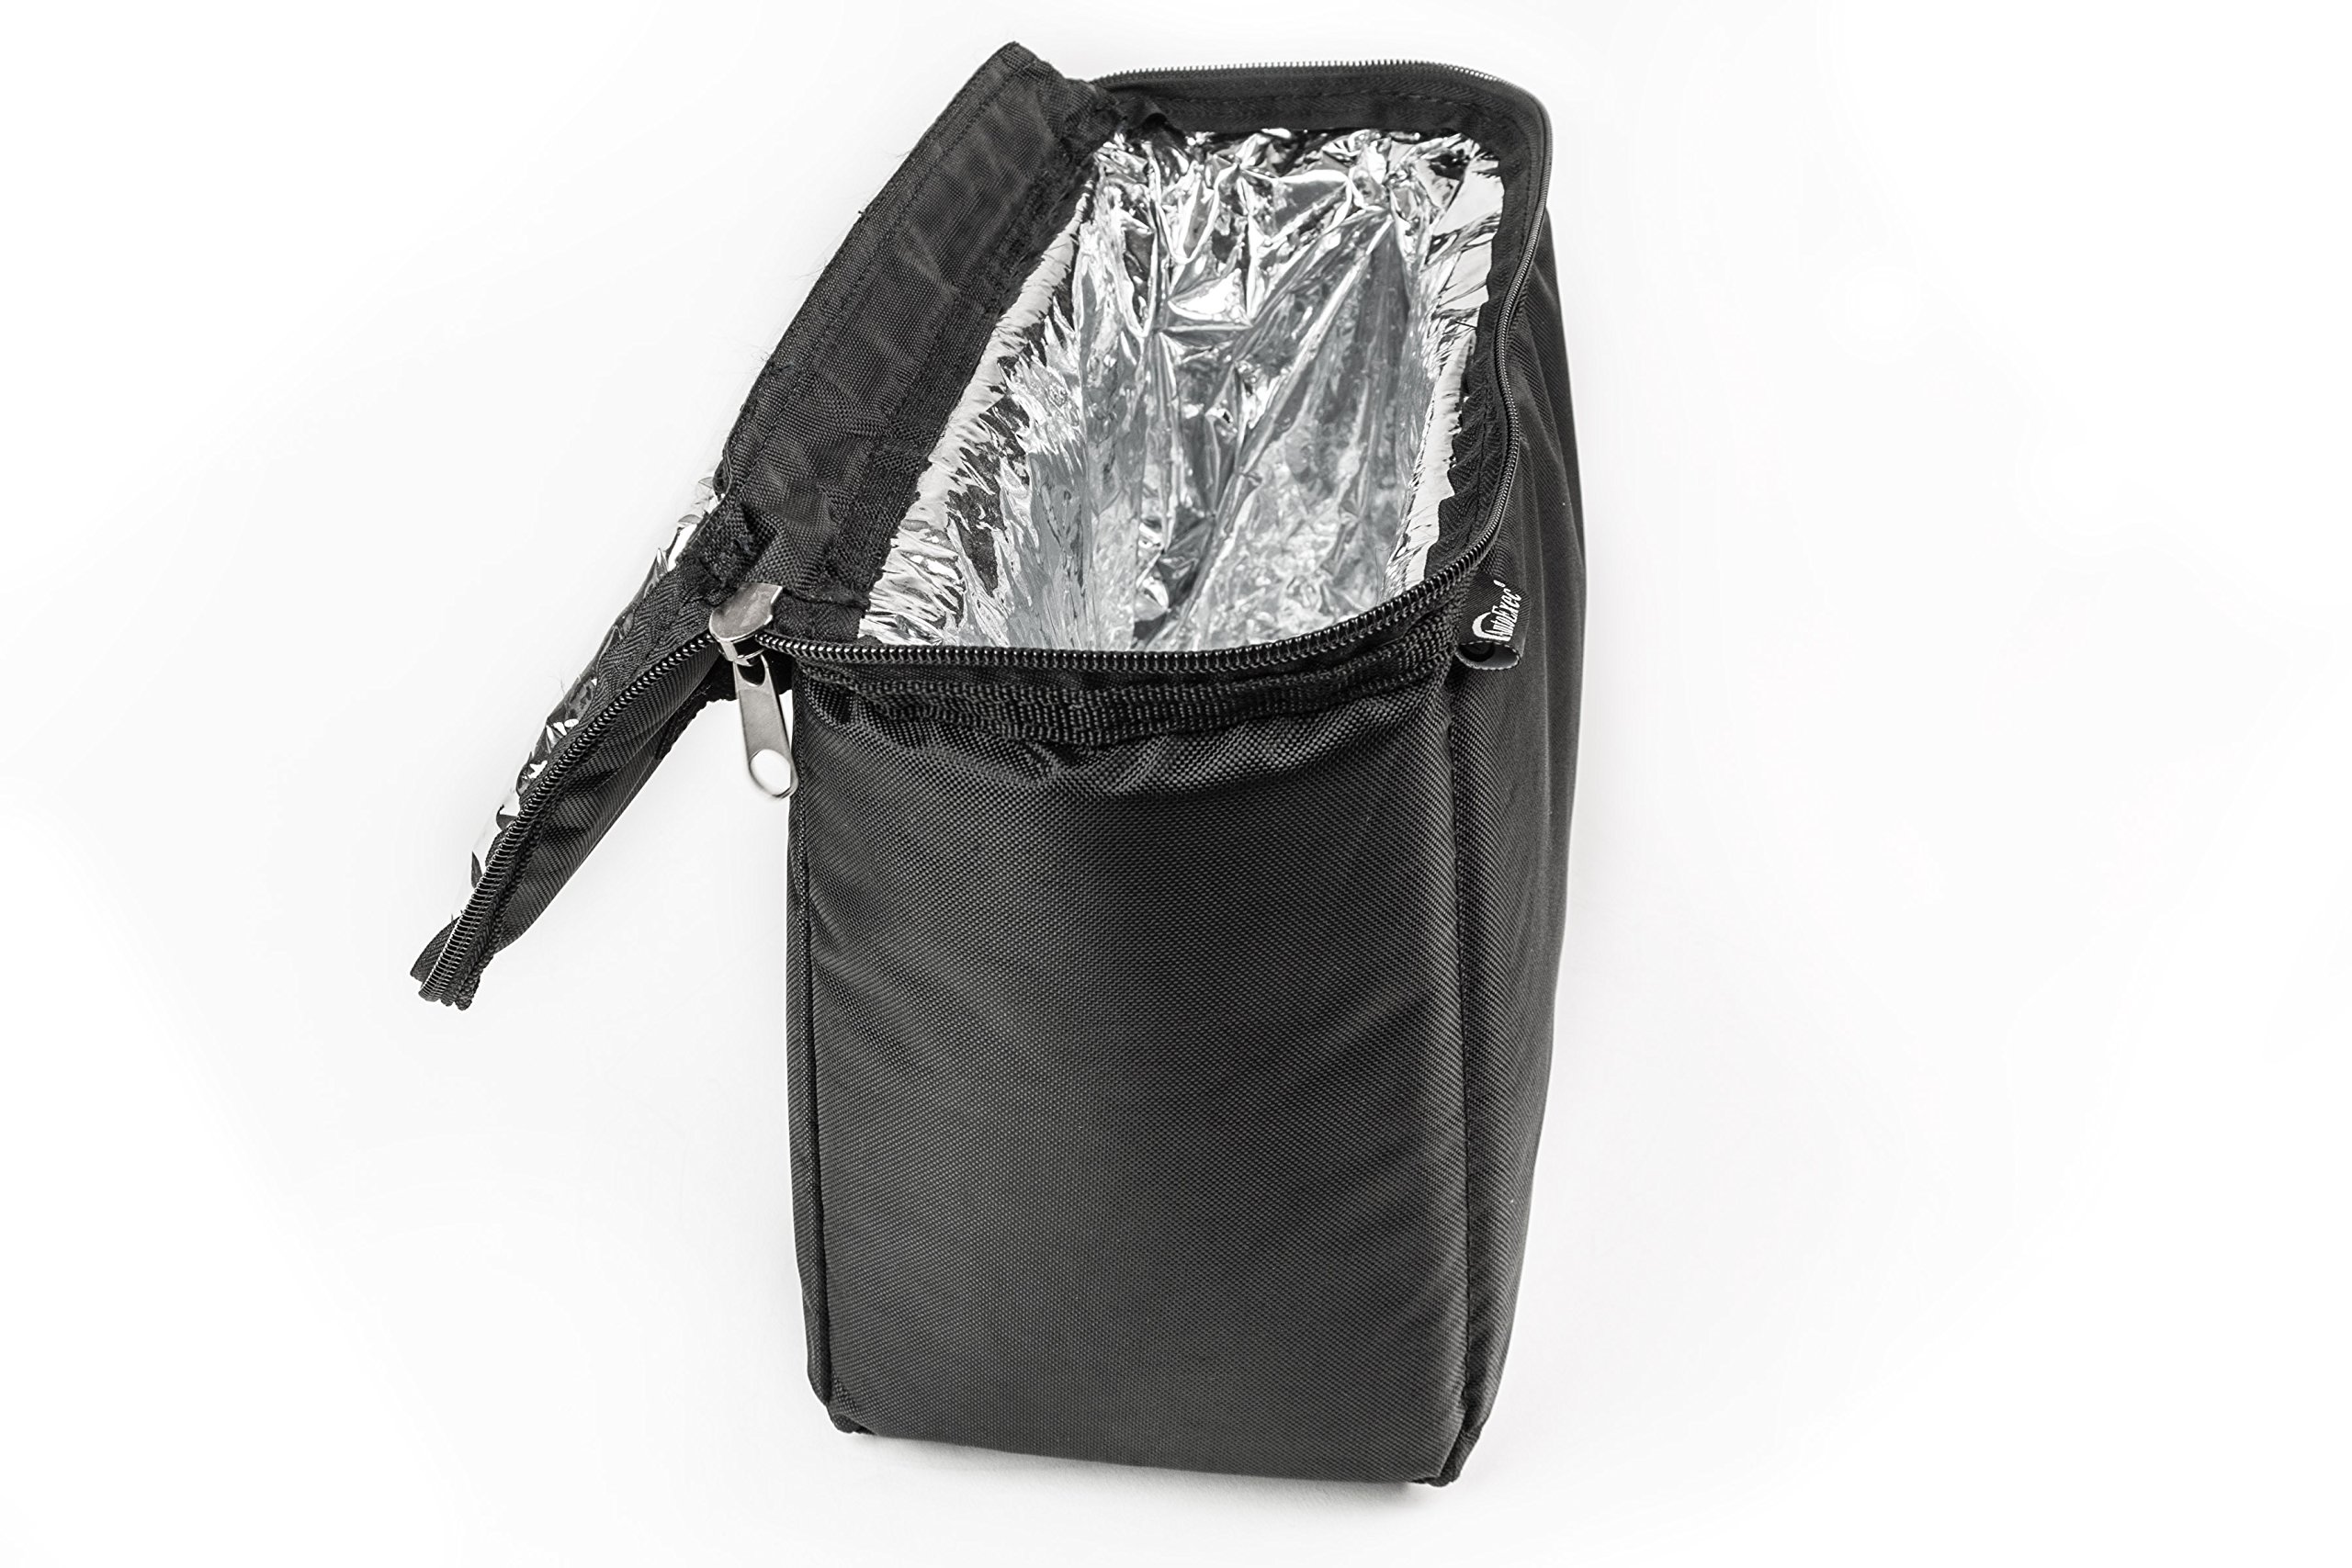 AutoExec AETote-09 Black/Grey File Tote with One Cooler and One Tablet Case by AutoExec (Image #8)